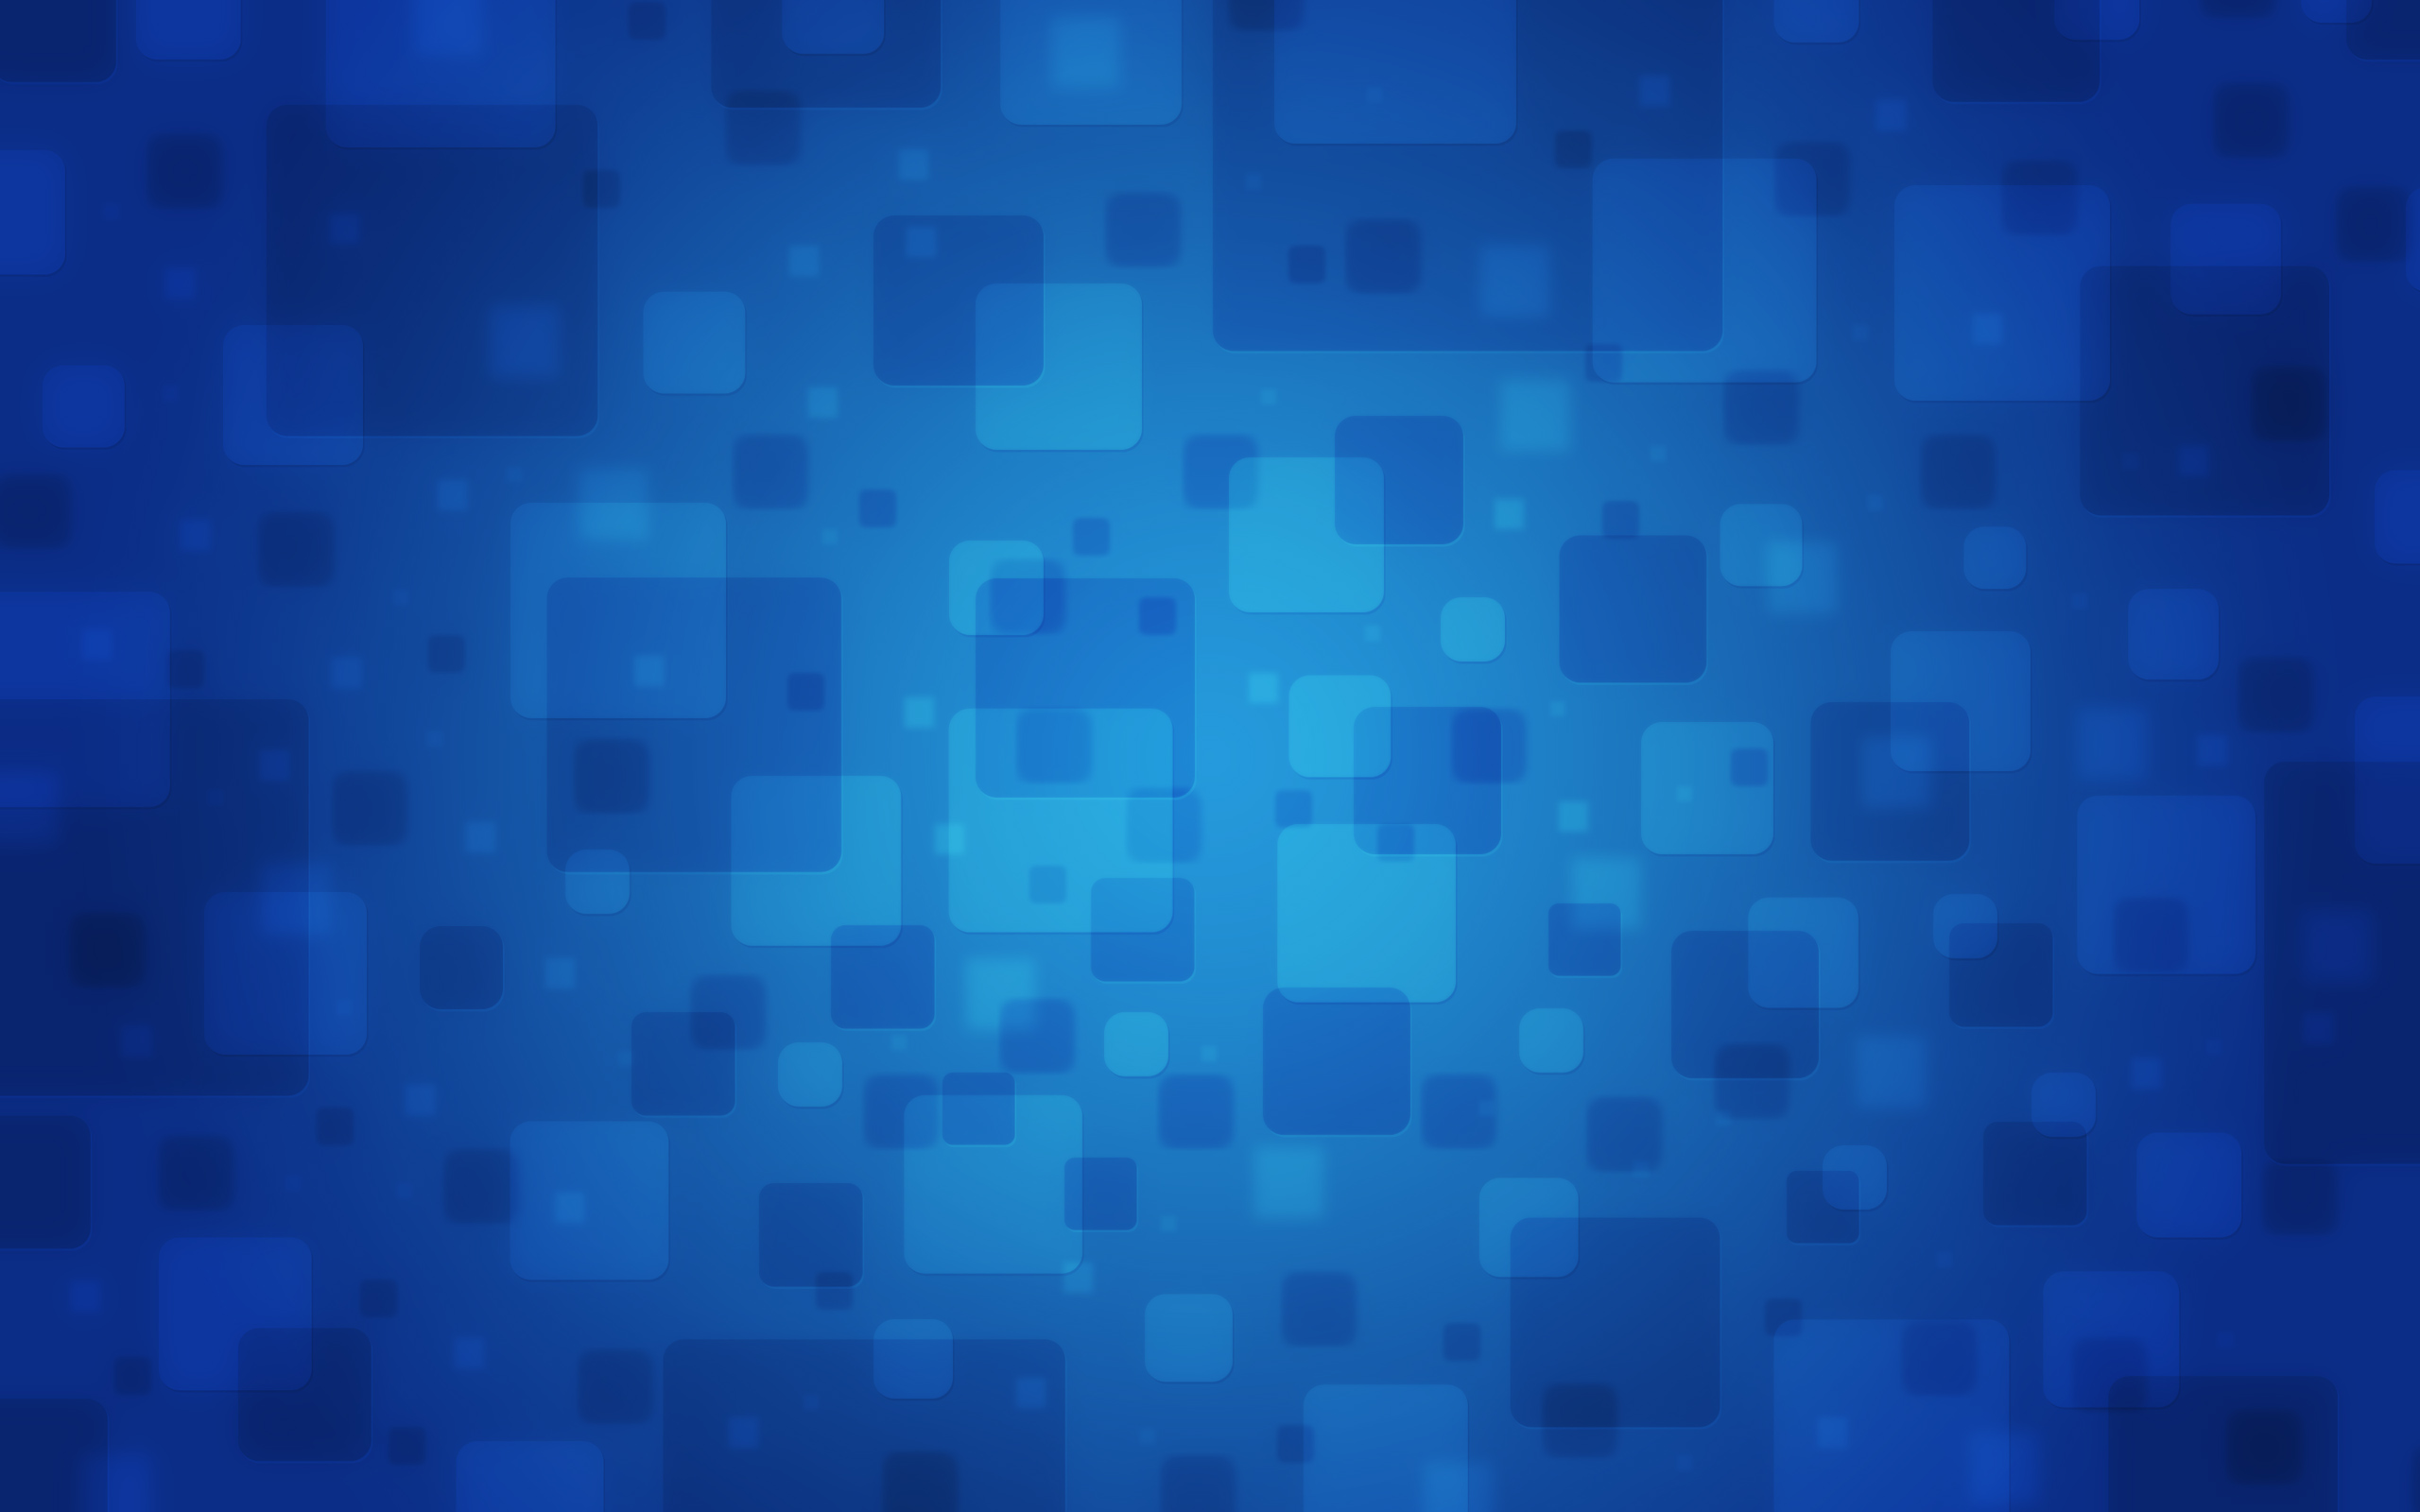 blue-background-hd-wallpapers11